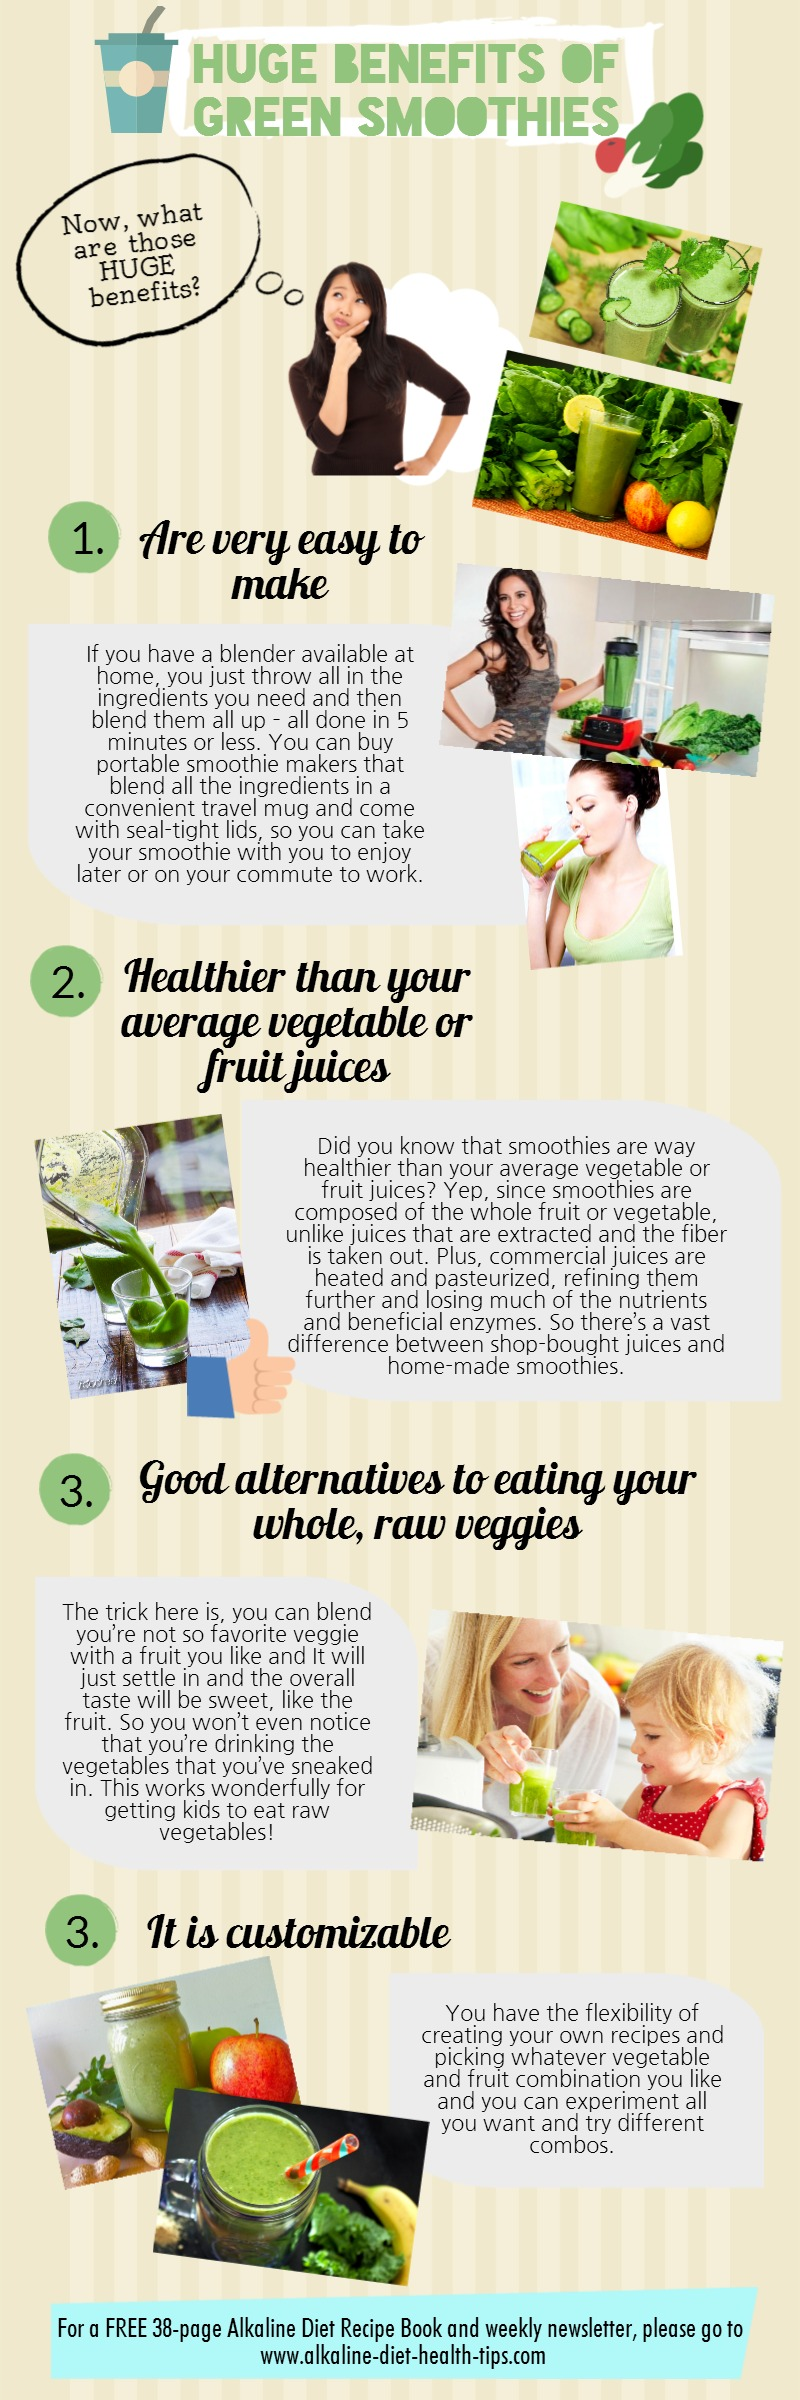 benefits-of-green-smoothies